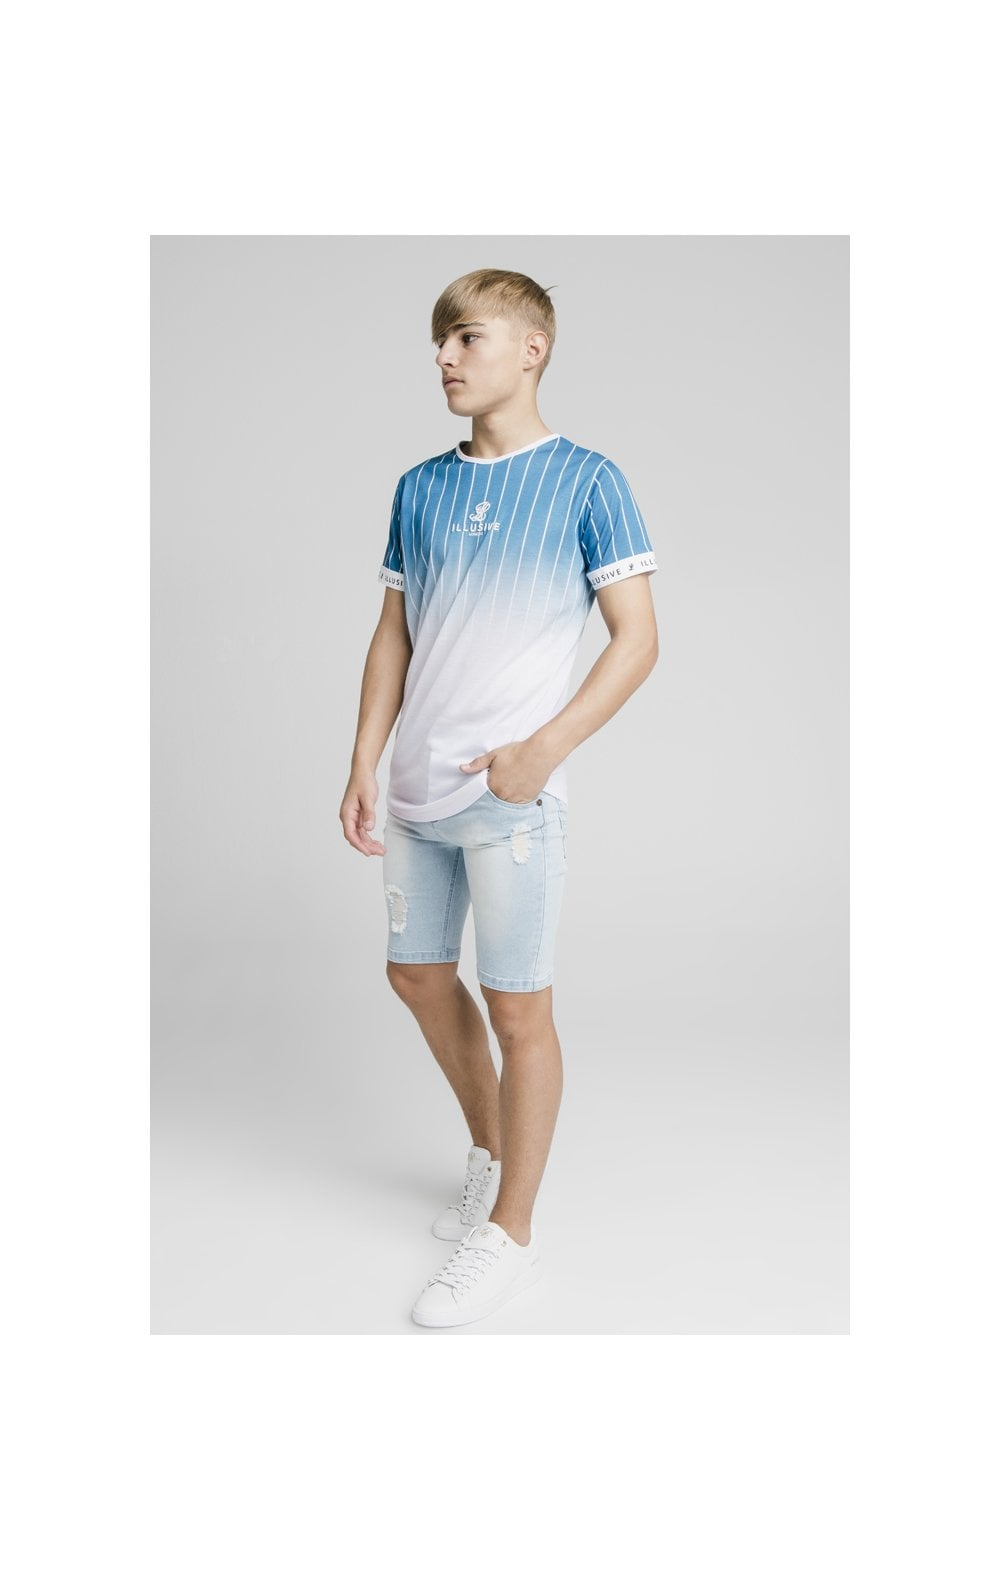 Load image into Gallery viewer, Illusive London Distressed Denim Shorts - Light Blue (6)